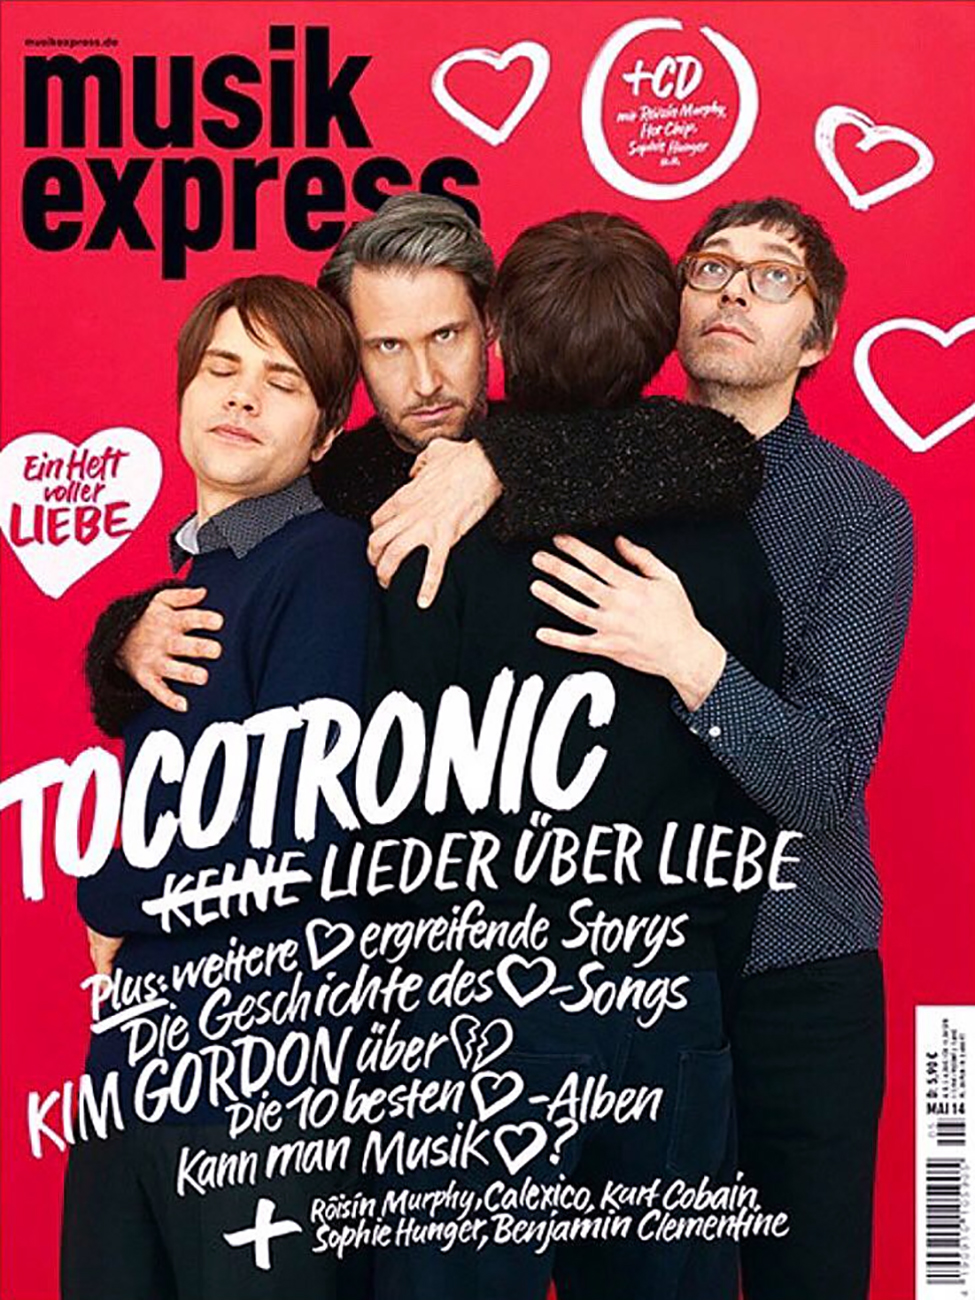 musikexpress tocotronic cover.jpg